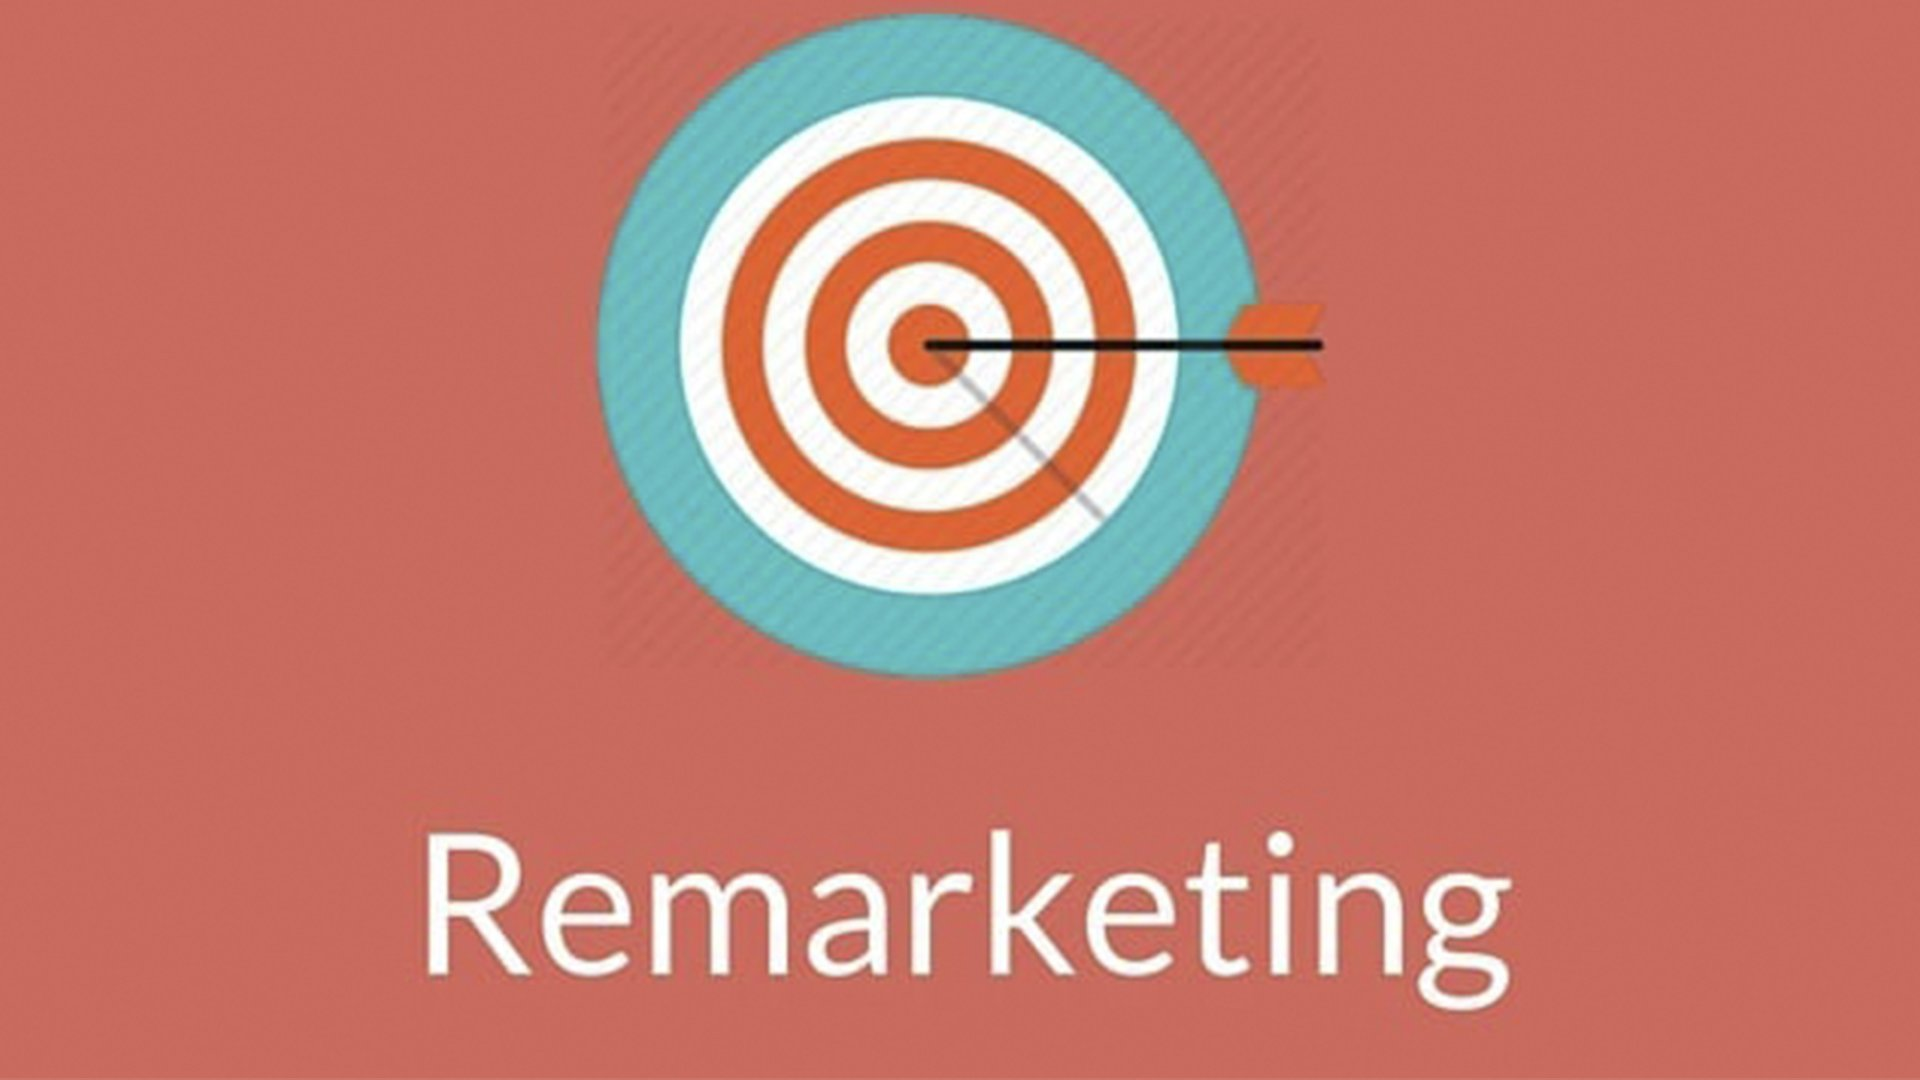 REMARKETING ETKİSİ